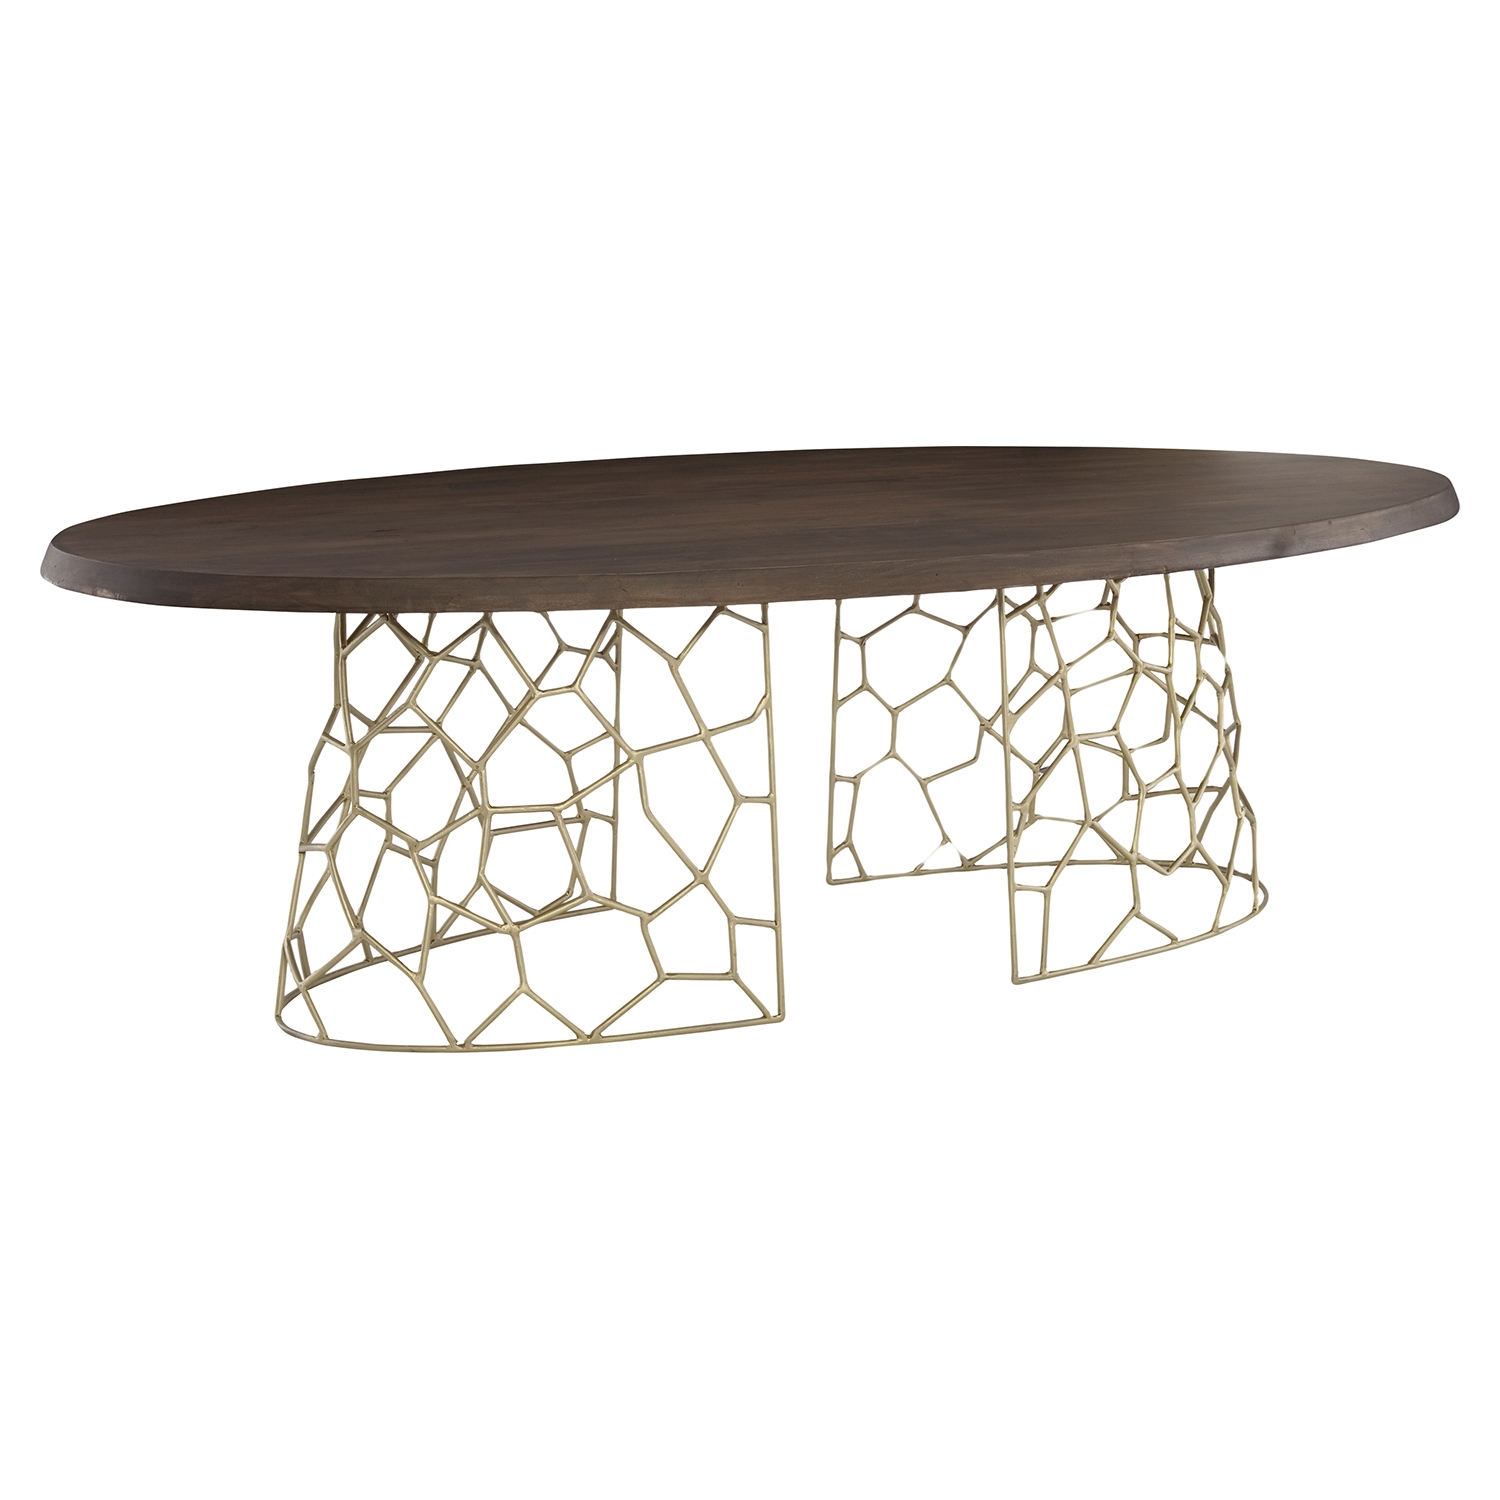 Ario Oval Dining Table - Brown - MOES-LX-1045-03